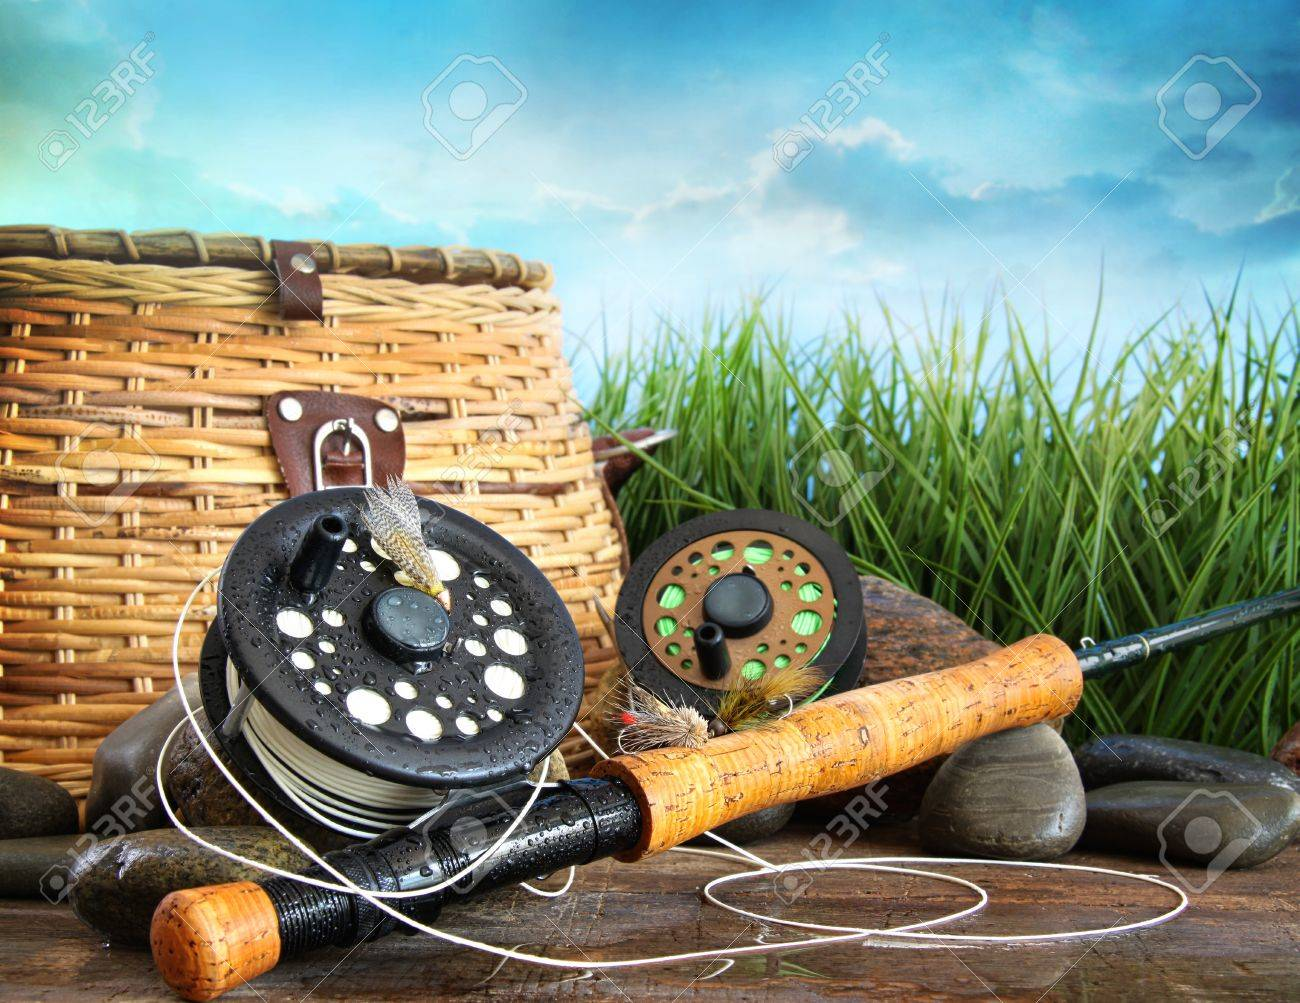 Closeup of fly fishing equipment and basket - 14878766